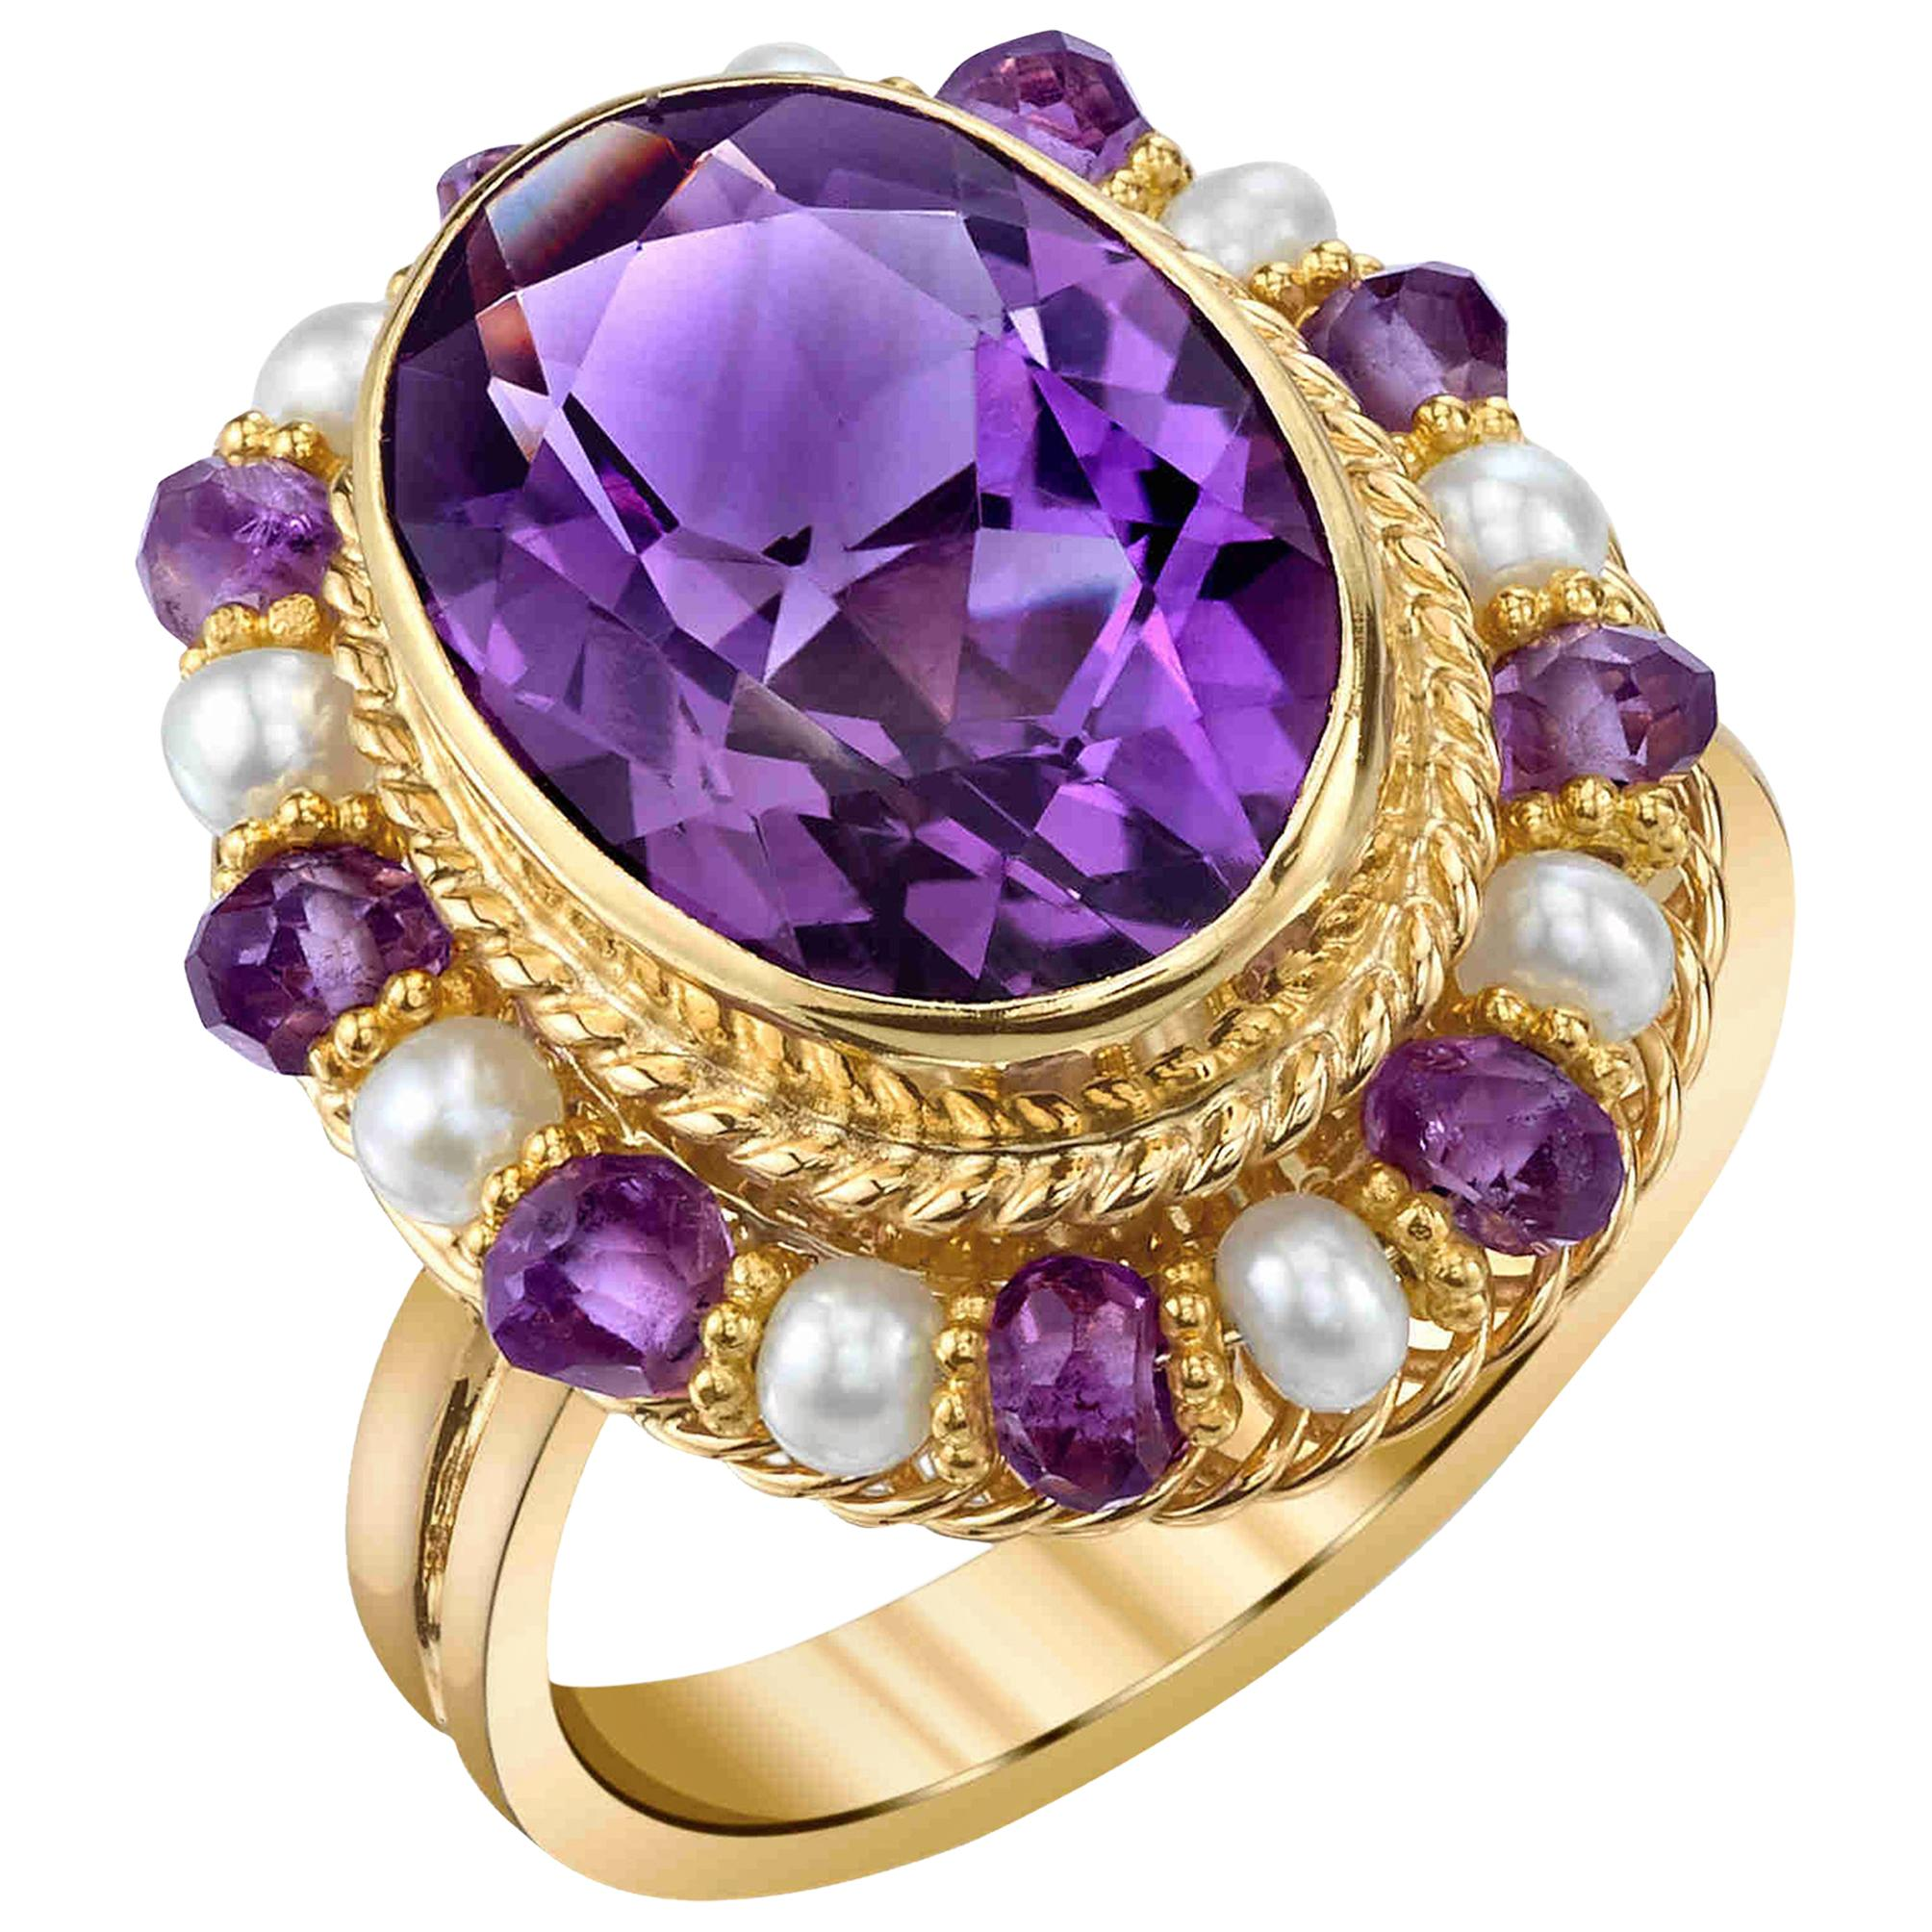 Amethyst Oval, Seed Pearl, Amethyst Bead Yellow Gold Filigree Cocktail Ring